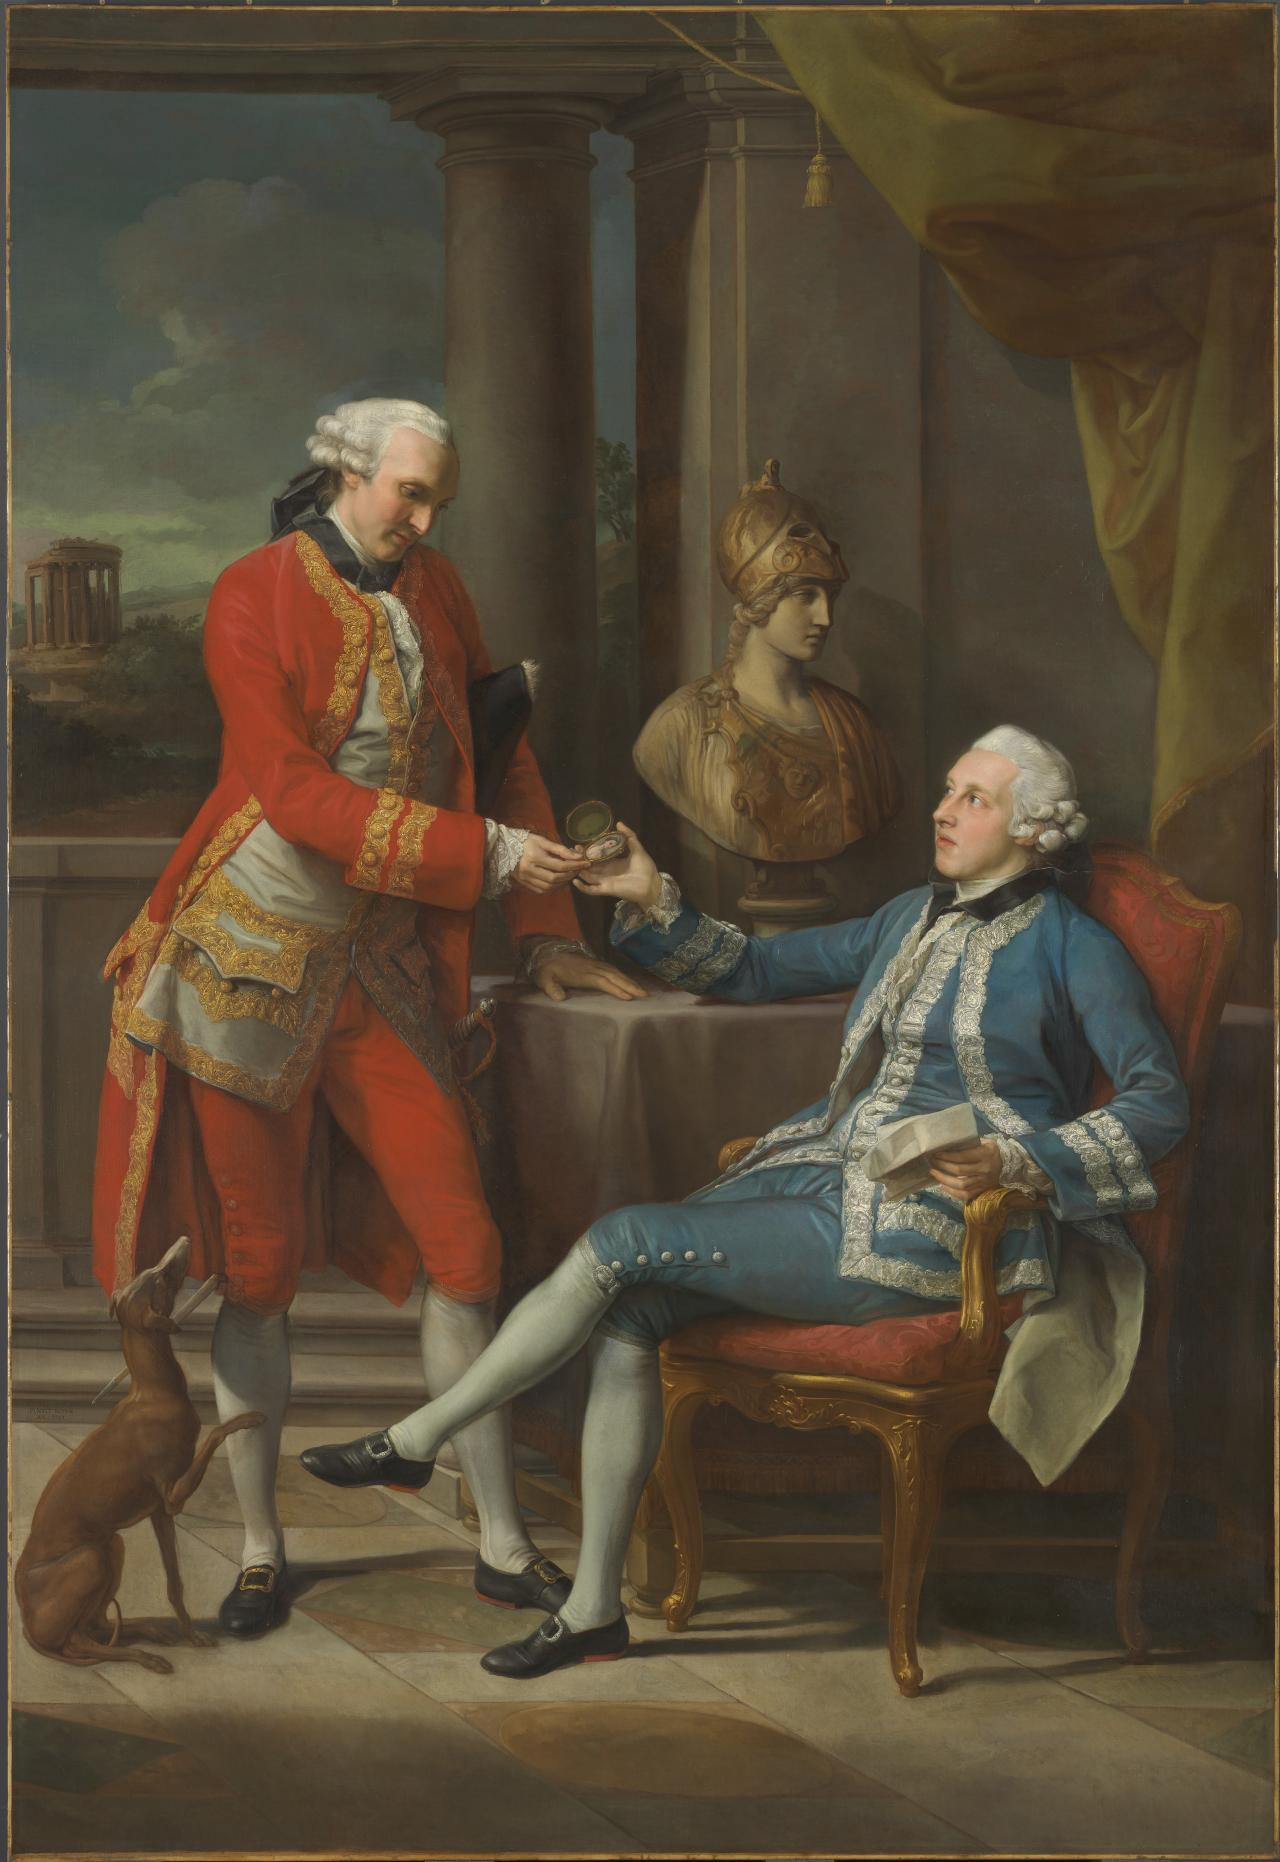 Sir Sampson Gideon and an unidentified companion